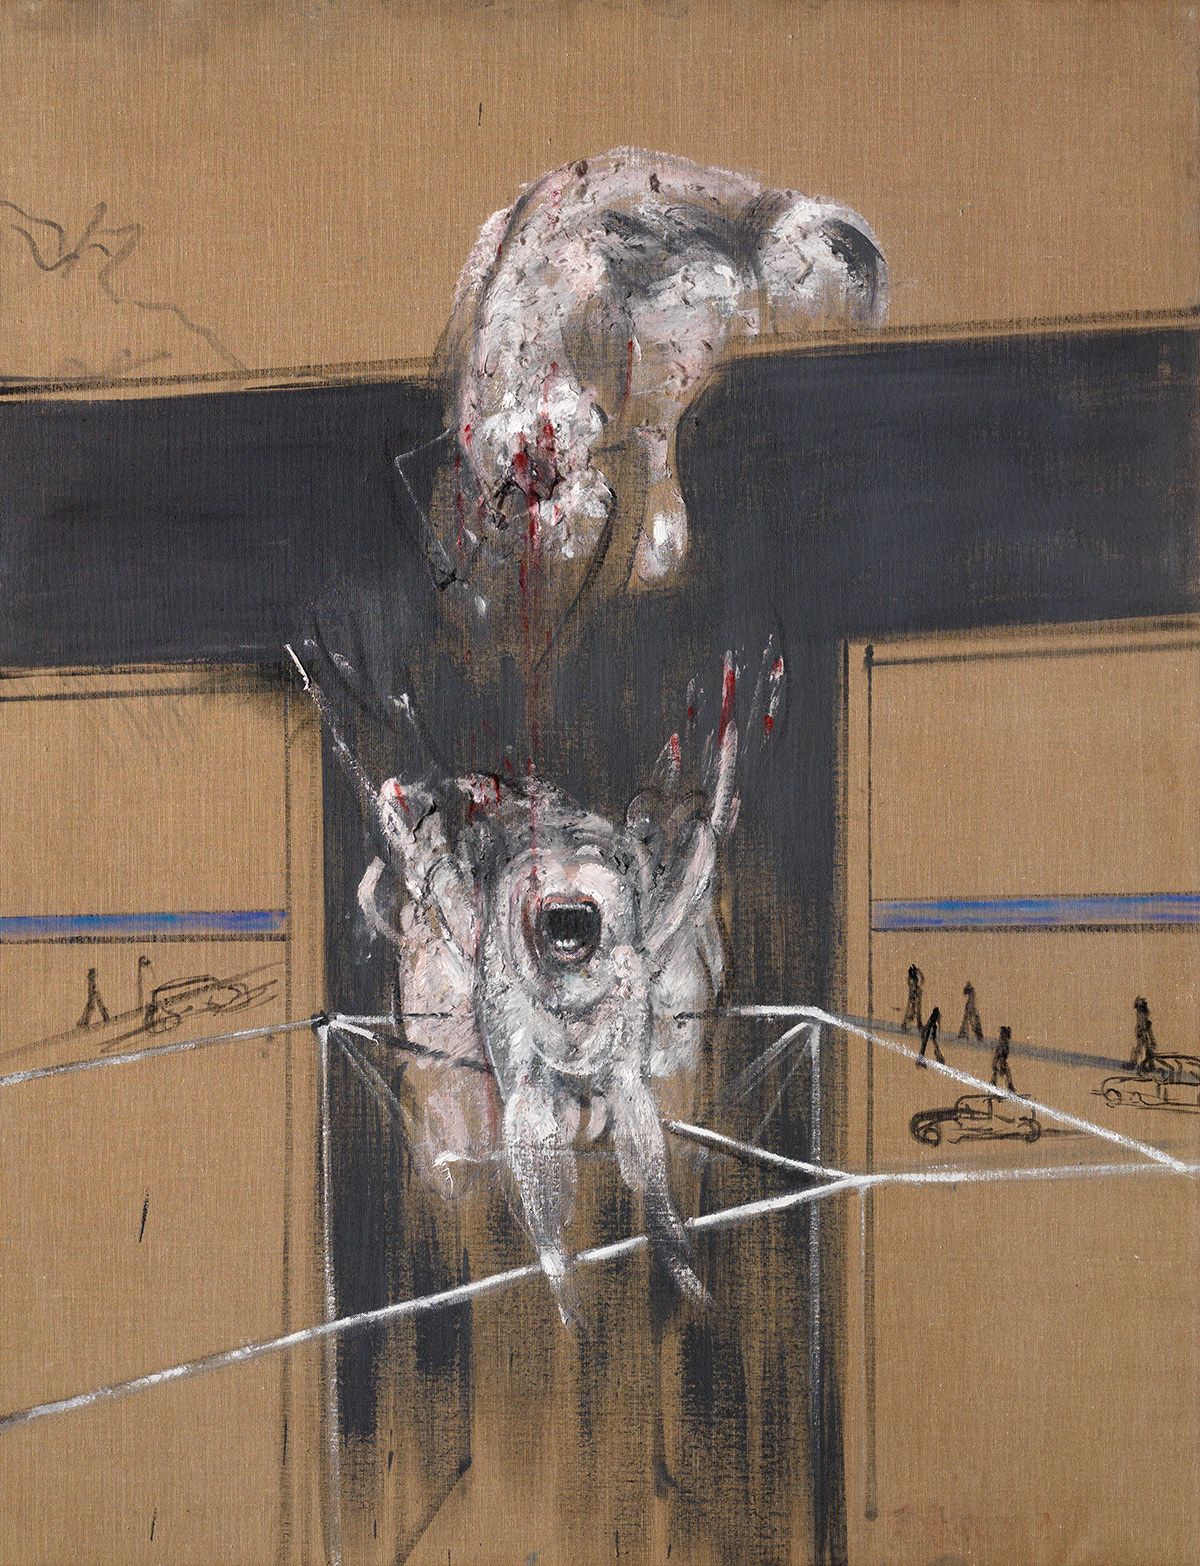 Francis Bacon, Fragment of a Crucifixion. Oil and cotton wool on canvas. CR number 50-02. © The Estate of Francis Bacon / DACS London 2020. All rights reserved.